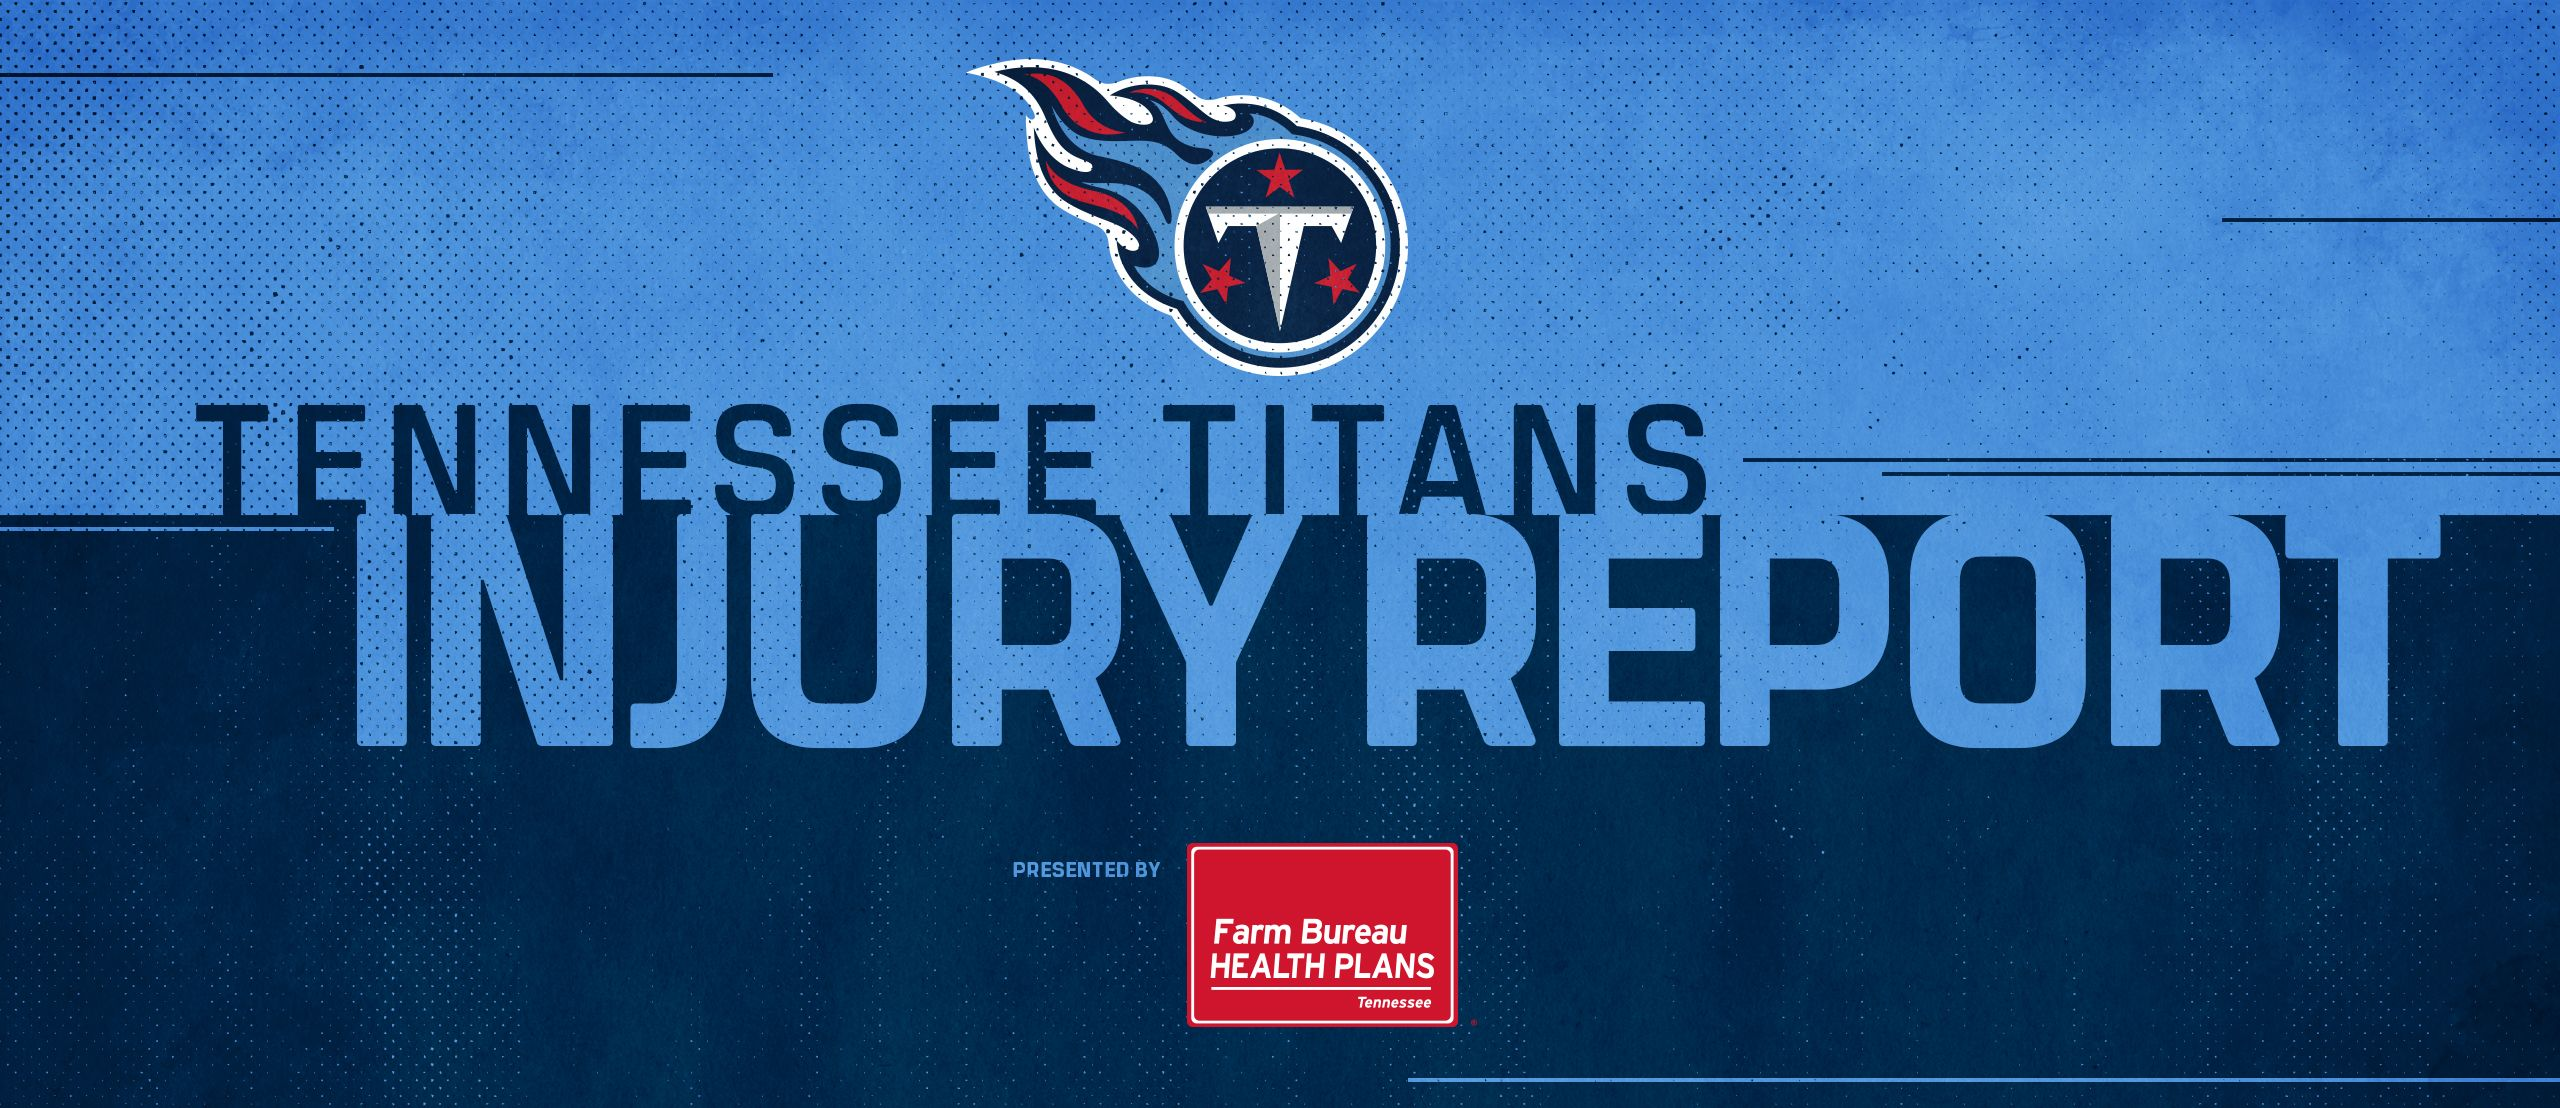 titans-injury-report-hdr